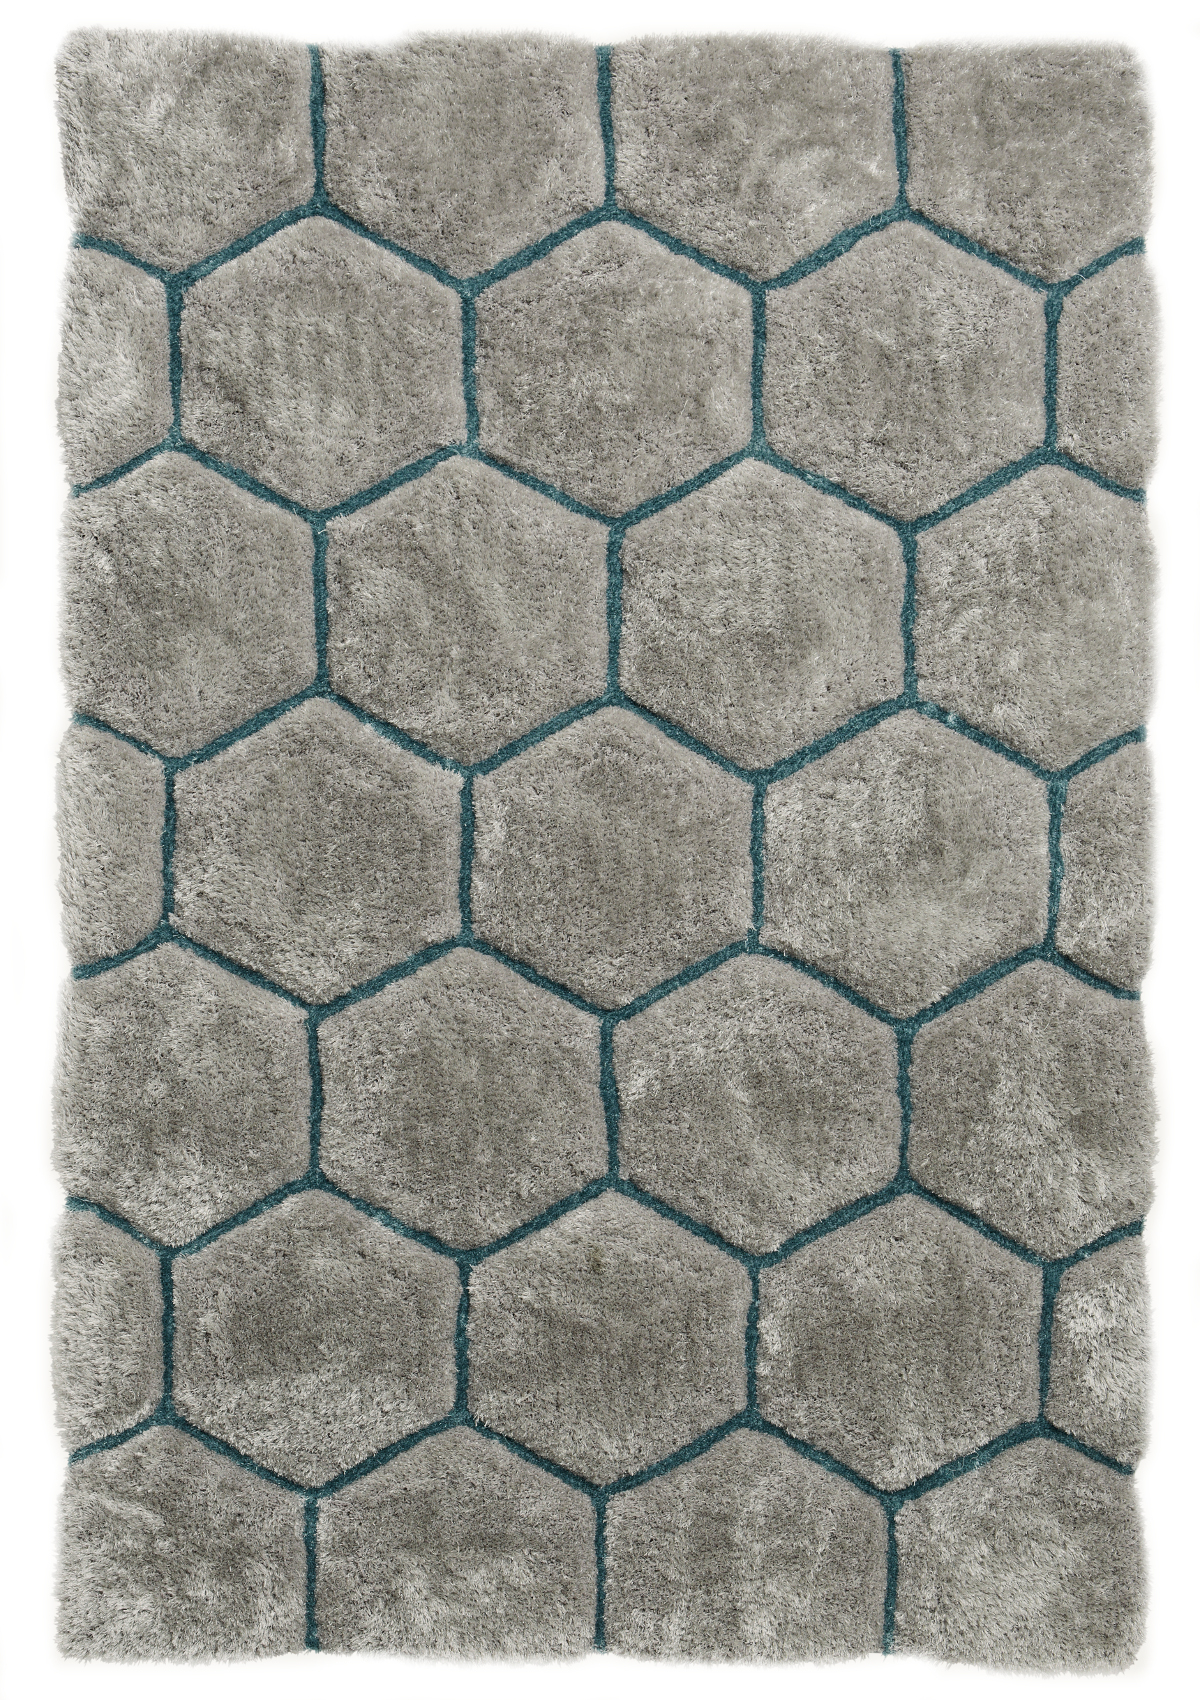 1366x768 grey honeycomb pattern - photo #23